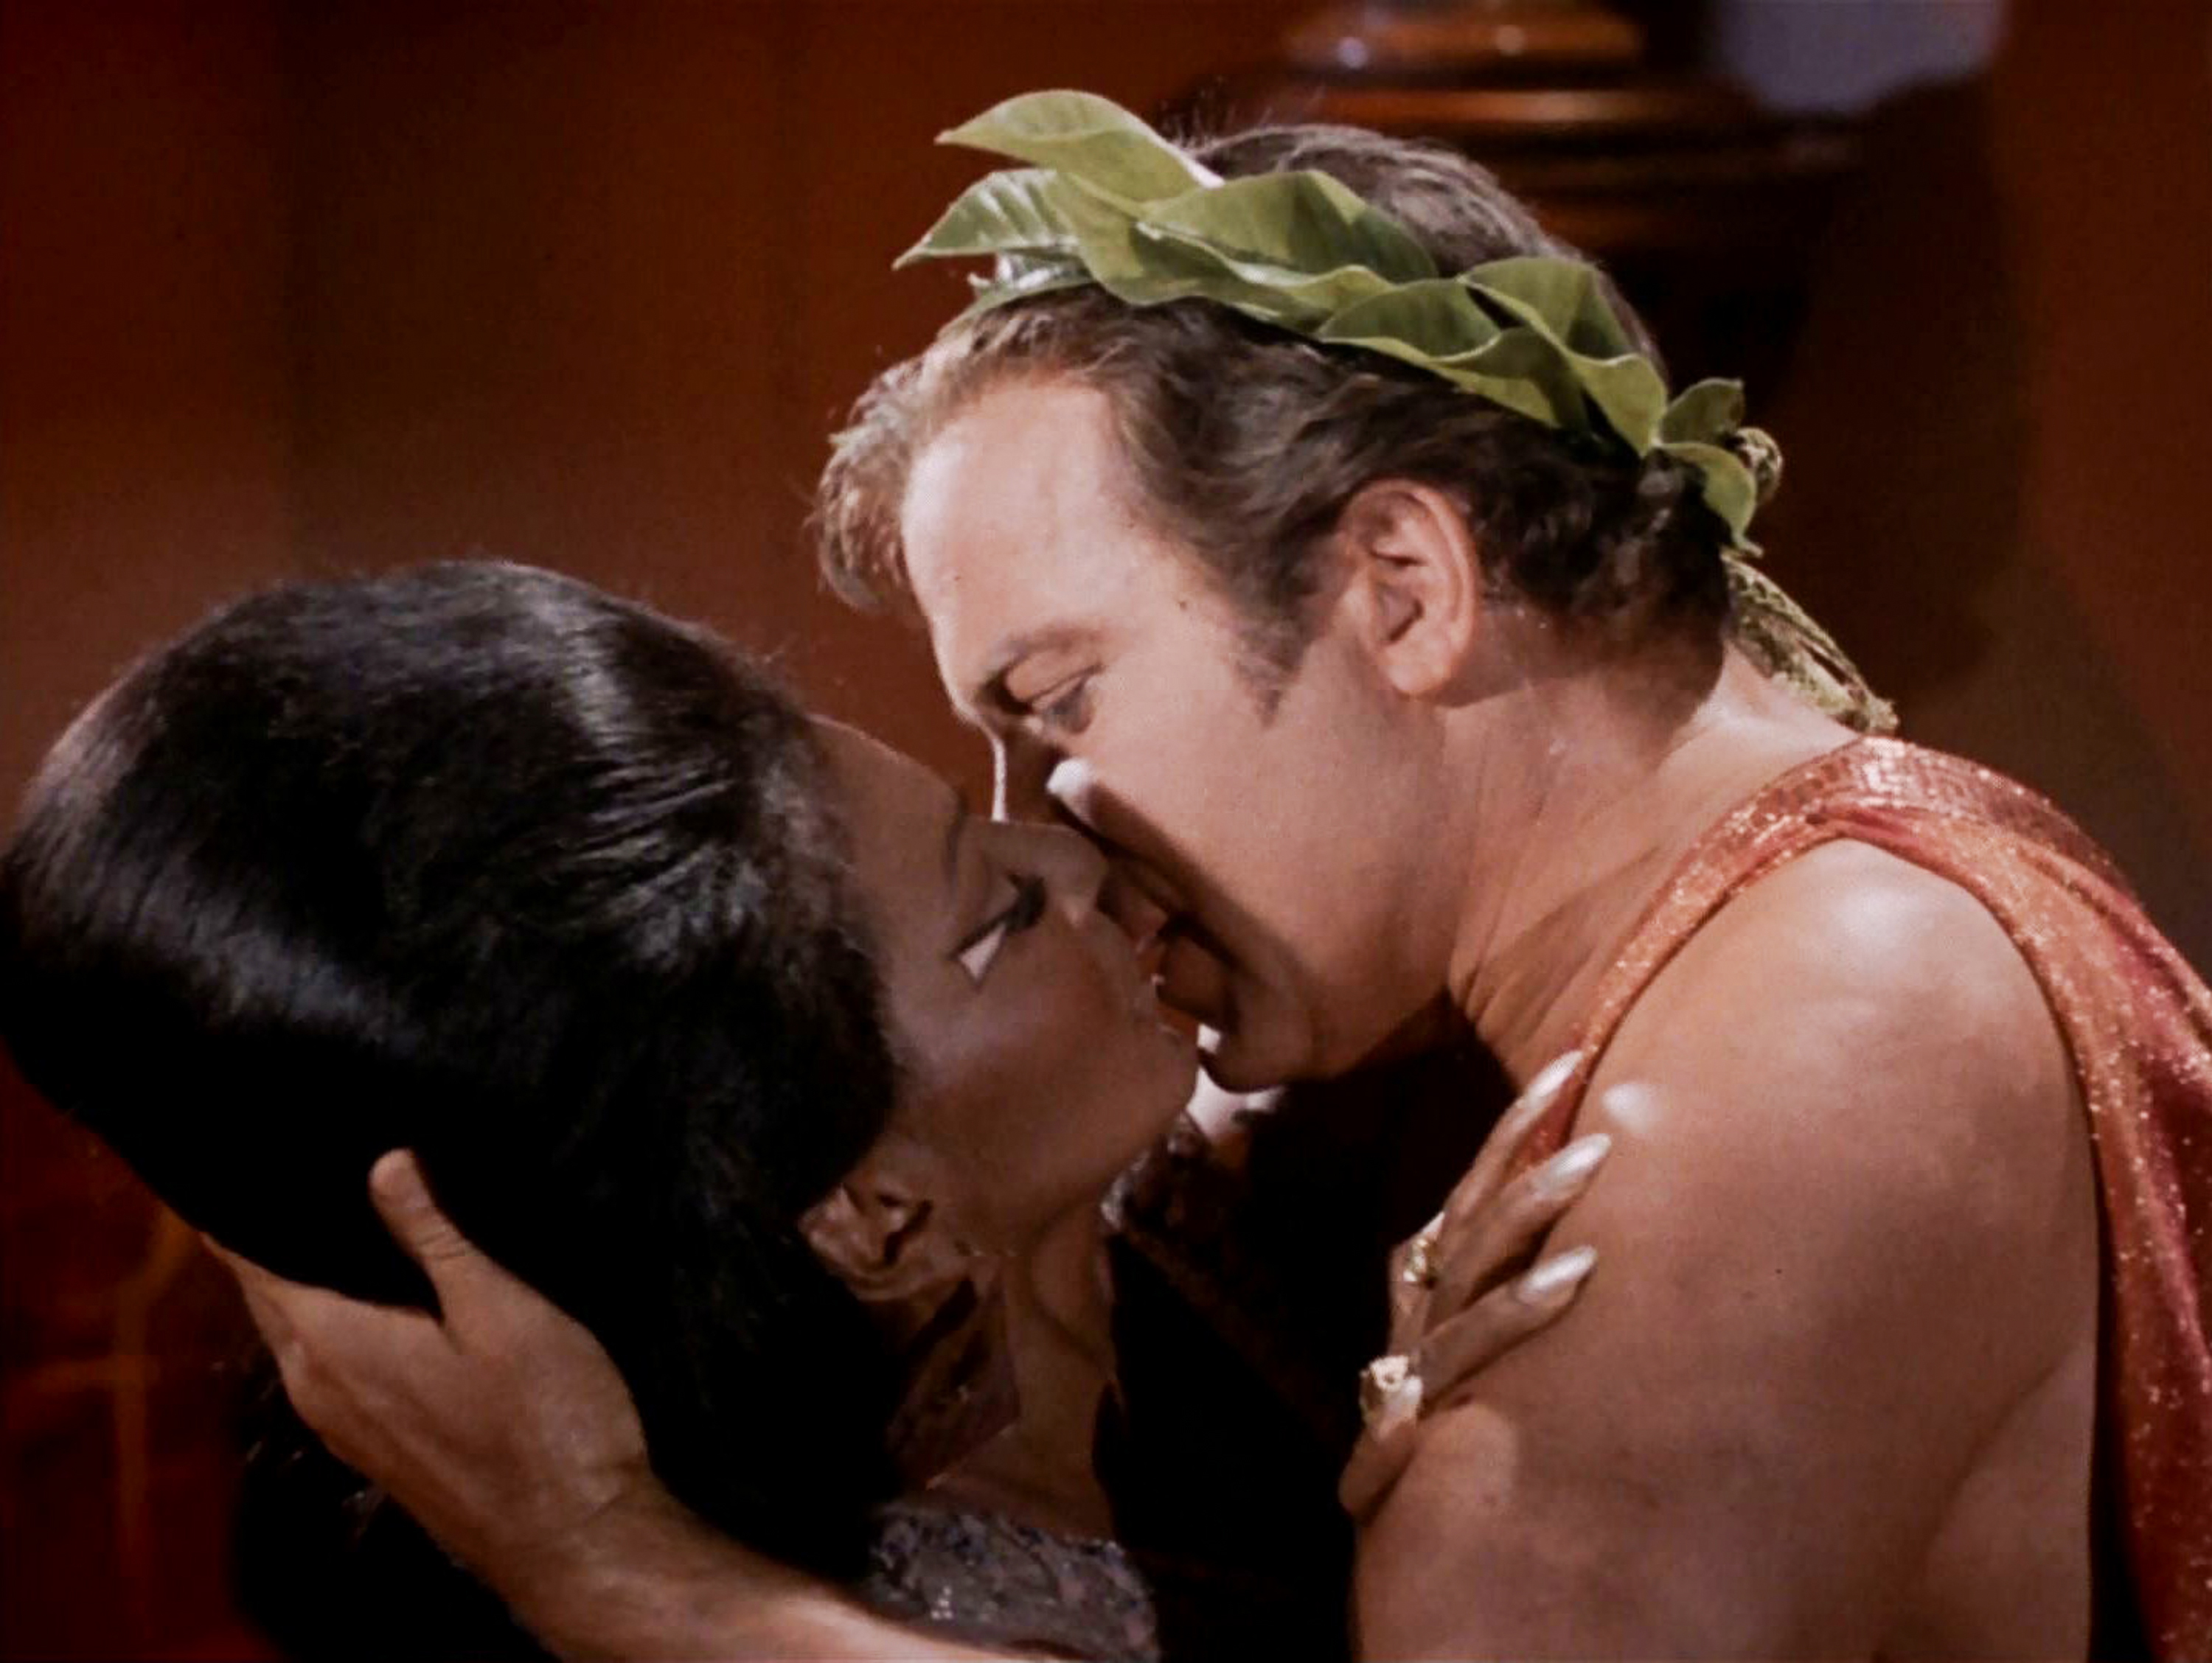 During the third season of Star Trek, Nichelle Nichols as Uhura and William Shatner as Captain Kirk shared television's first interracial kiss. (Credit: CBS/Getty Images)